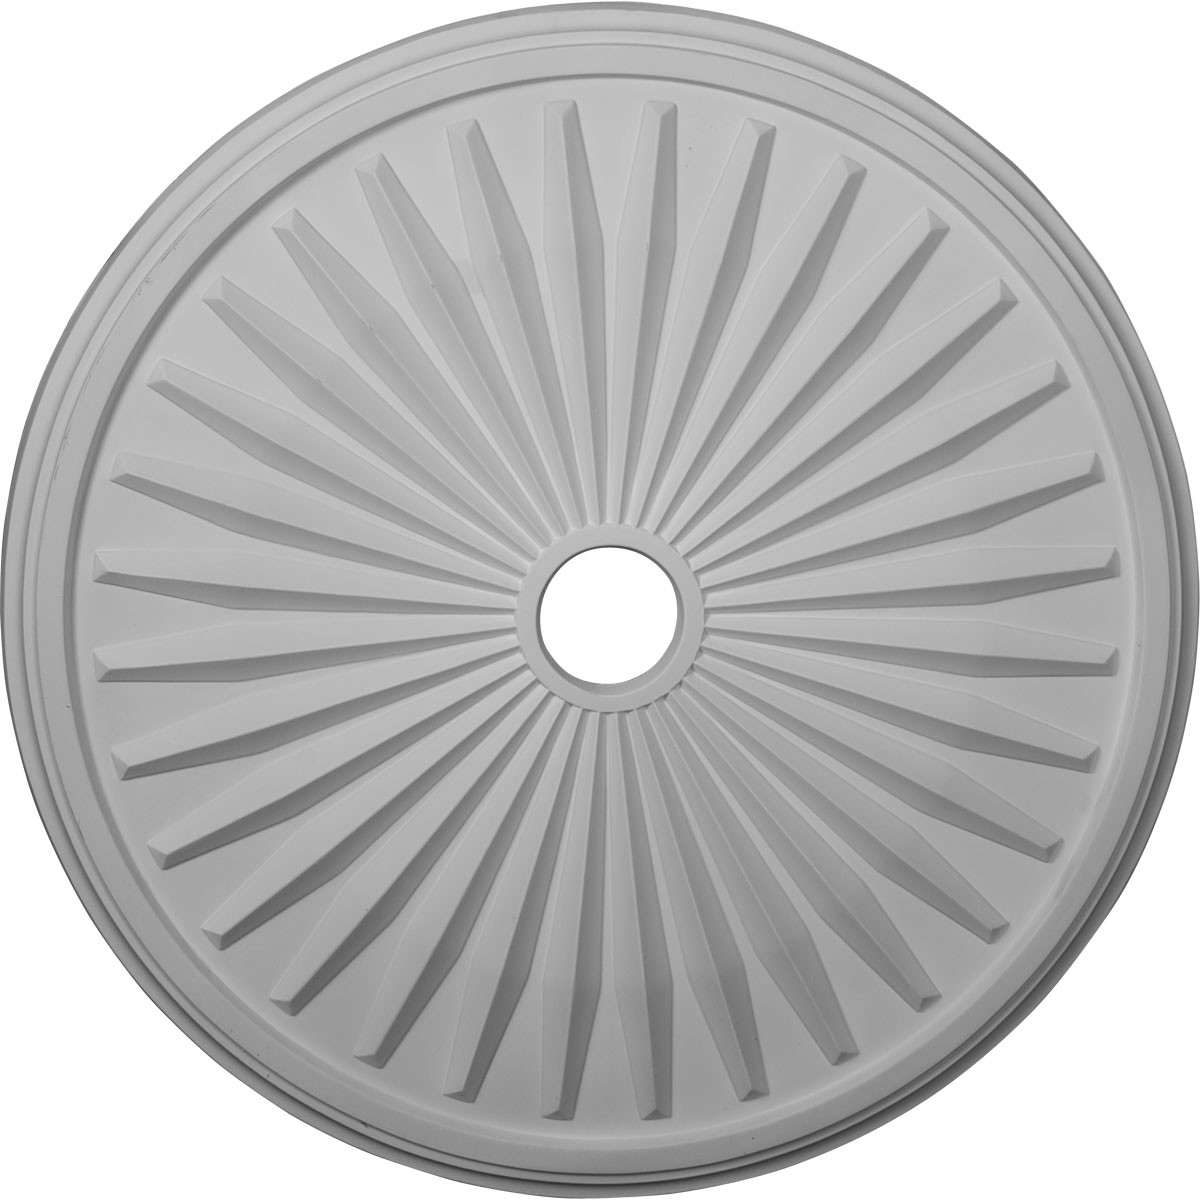 """EM-CM33LE - 33 1/8""""OD x 3 1/2""""ID x 1 3/8""""P Leandros Ceiling Medallion (Fits Canopies up to 5"""")"""